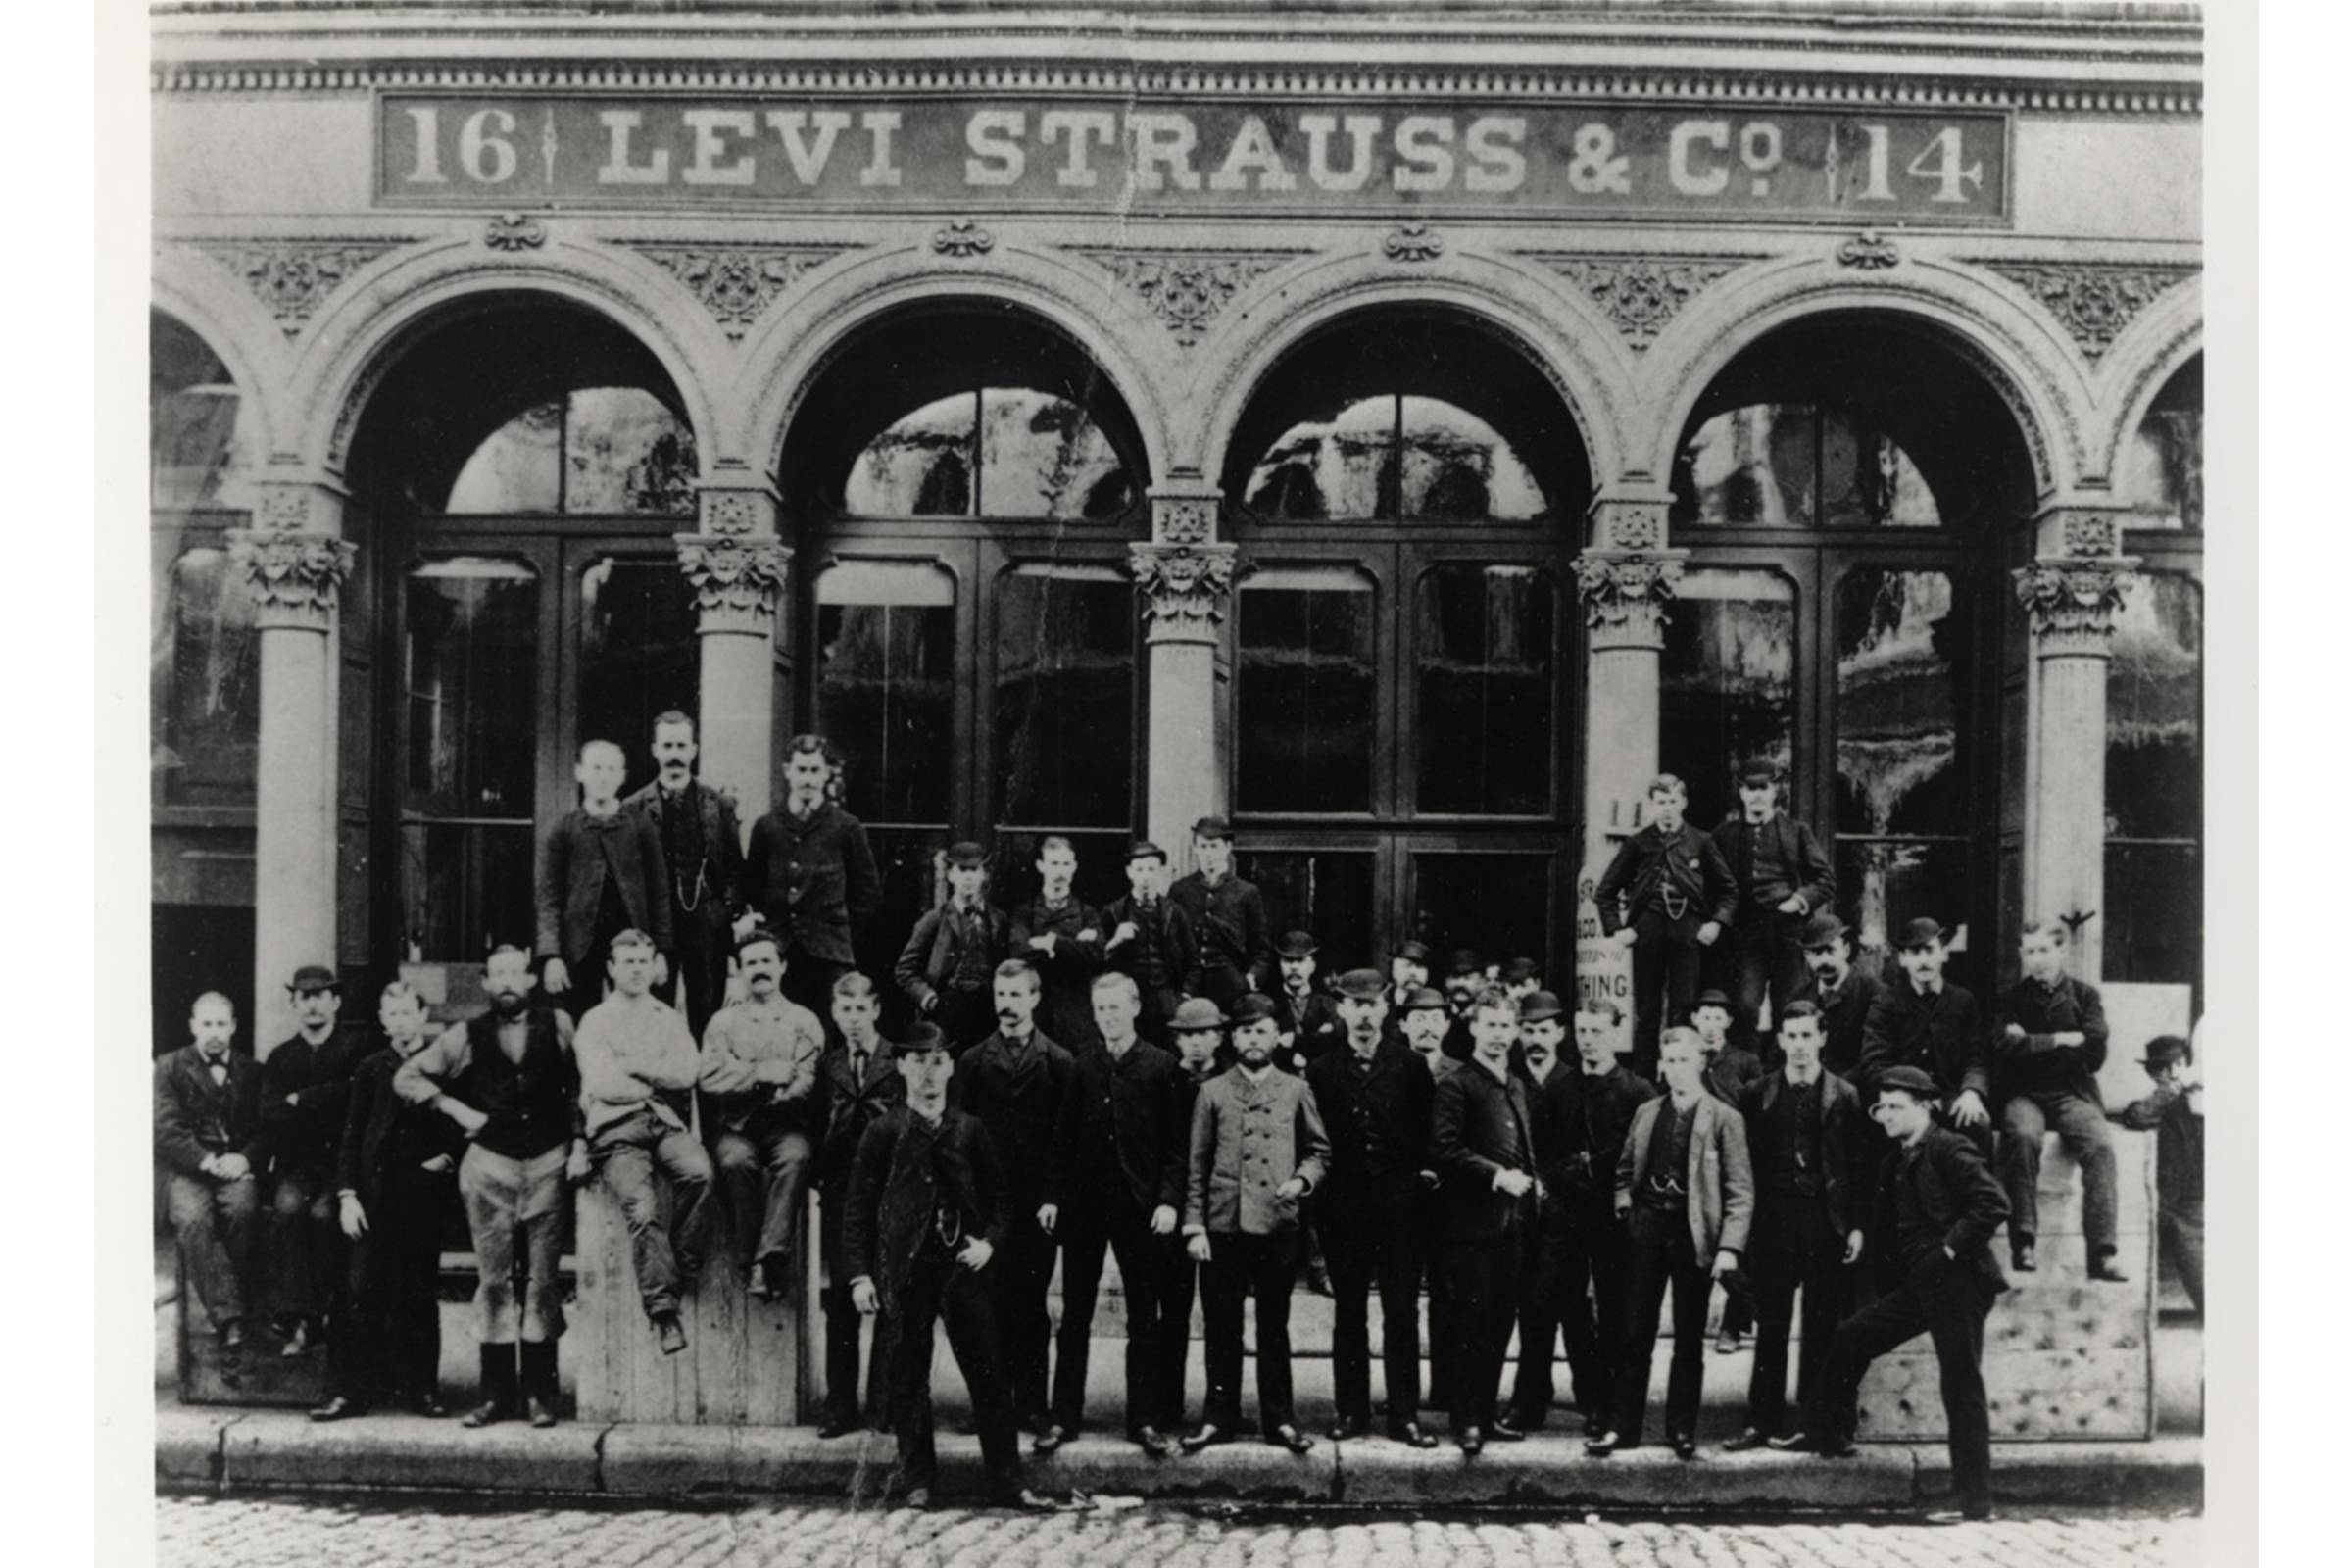 The original Levi's factory, at 14-16 Battery Street in San Francisco